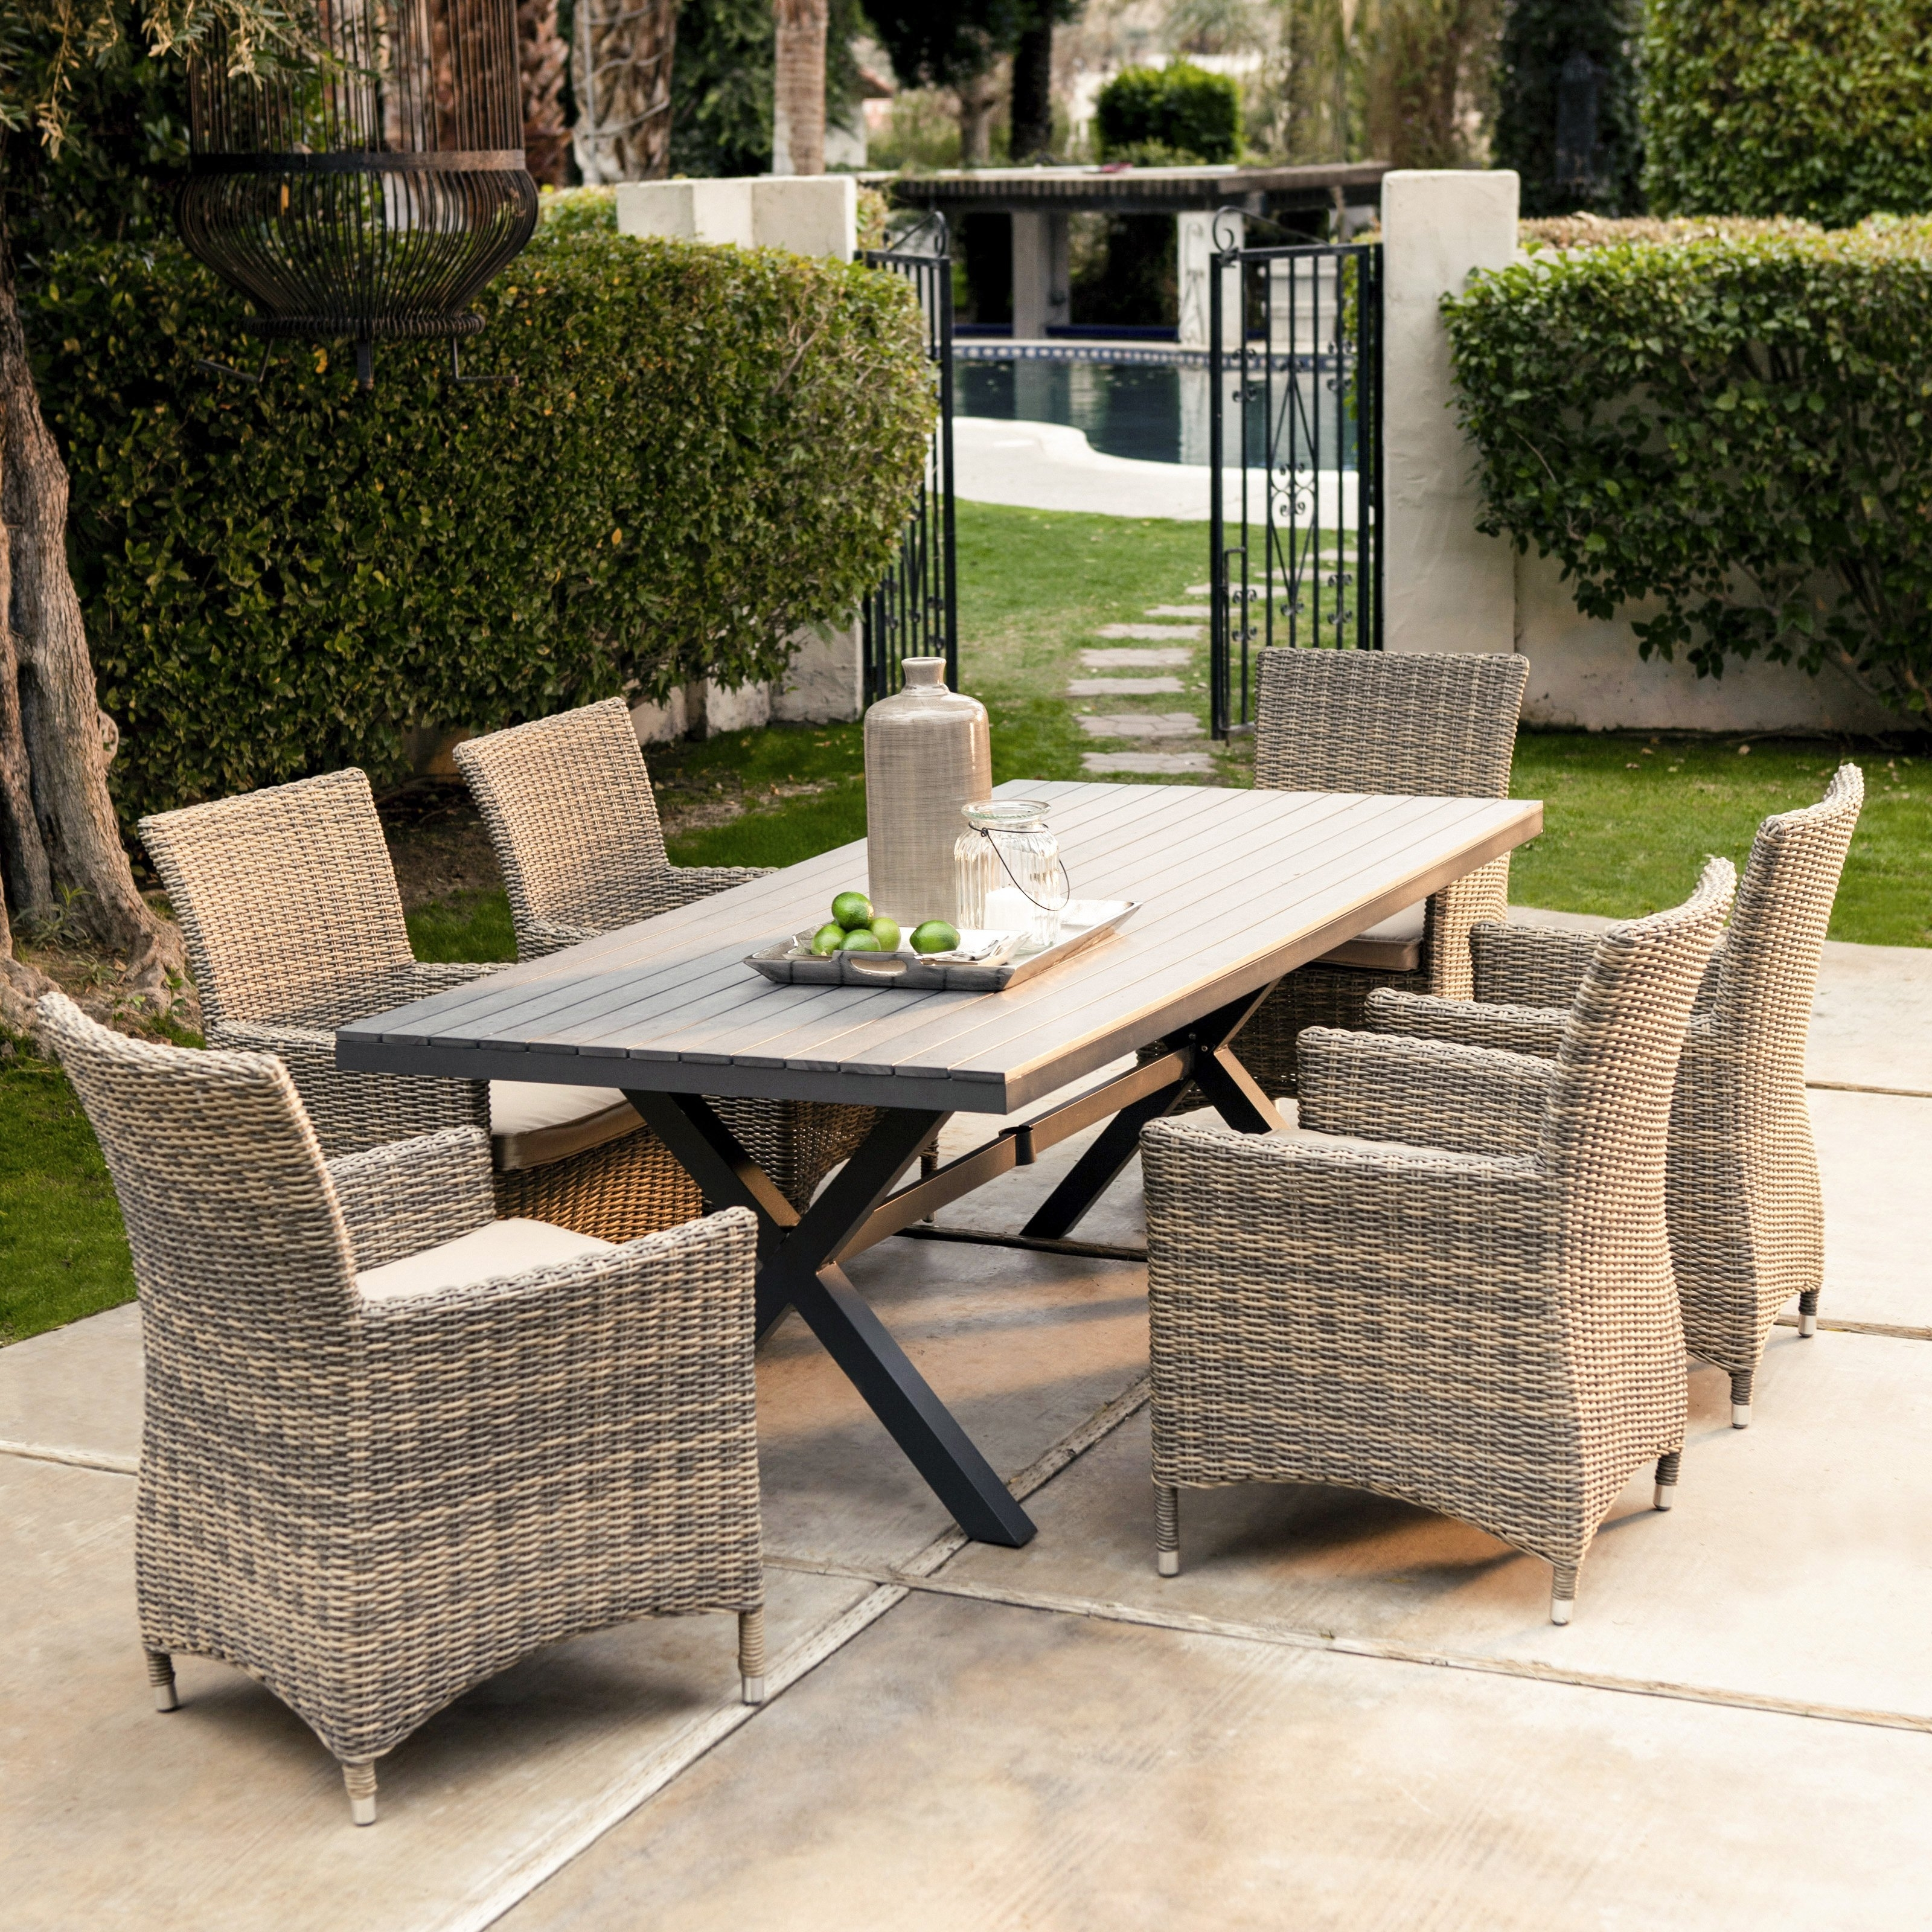 Trendy Outdoor Dinette Sets' Ideas – Bellissimainteriors Pertaining To Outdoor Dining Table And Chairs Sets (View 22 of 25)